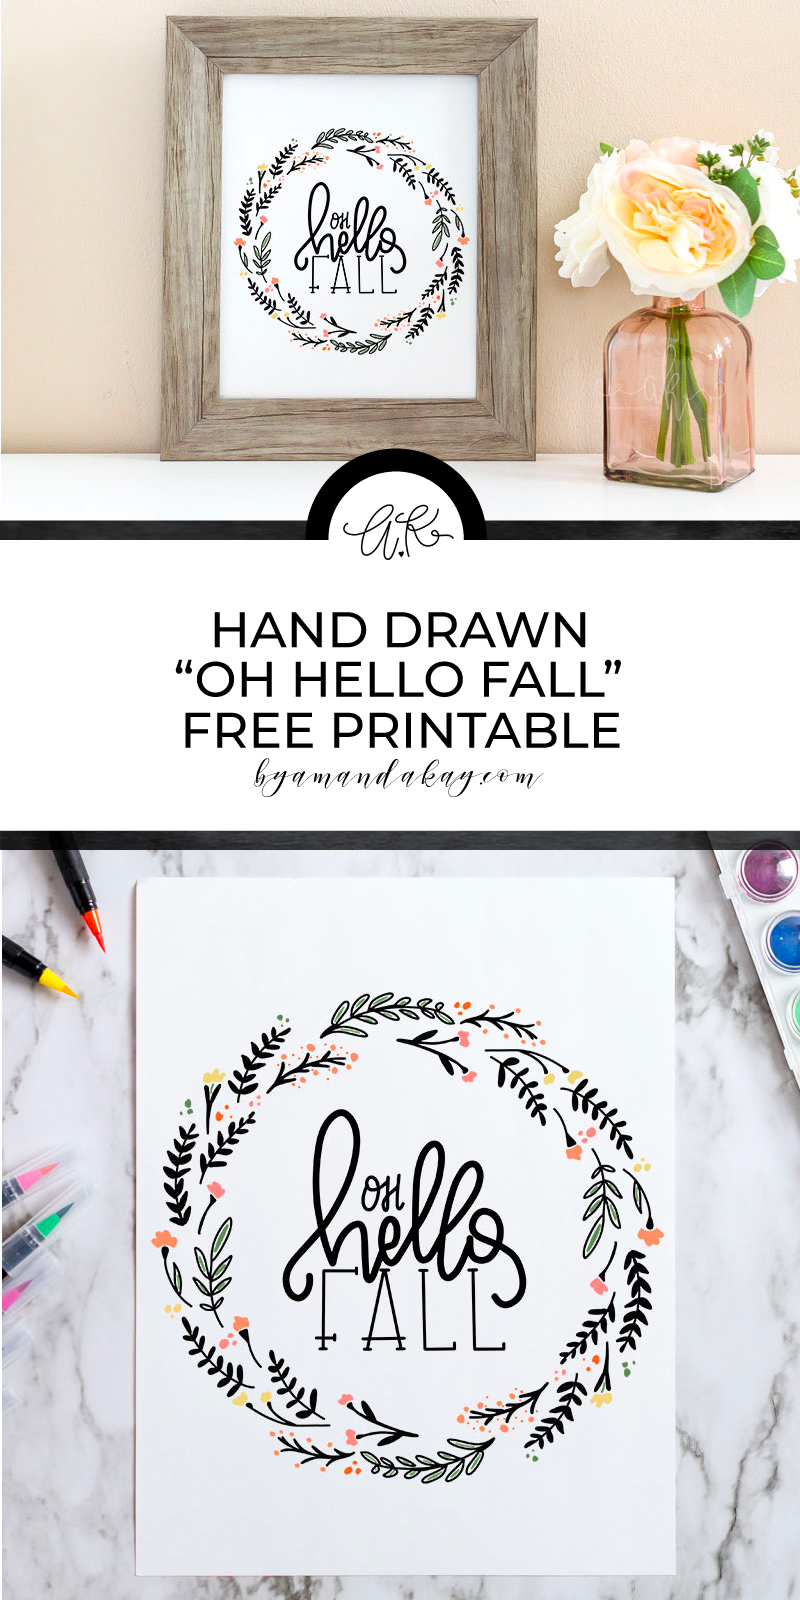 Hand drawn fall inspired printable